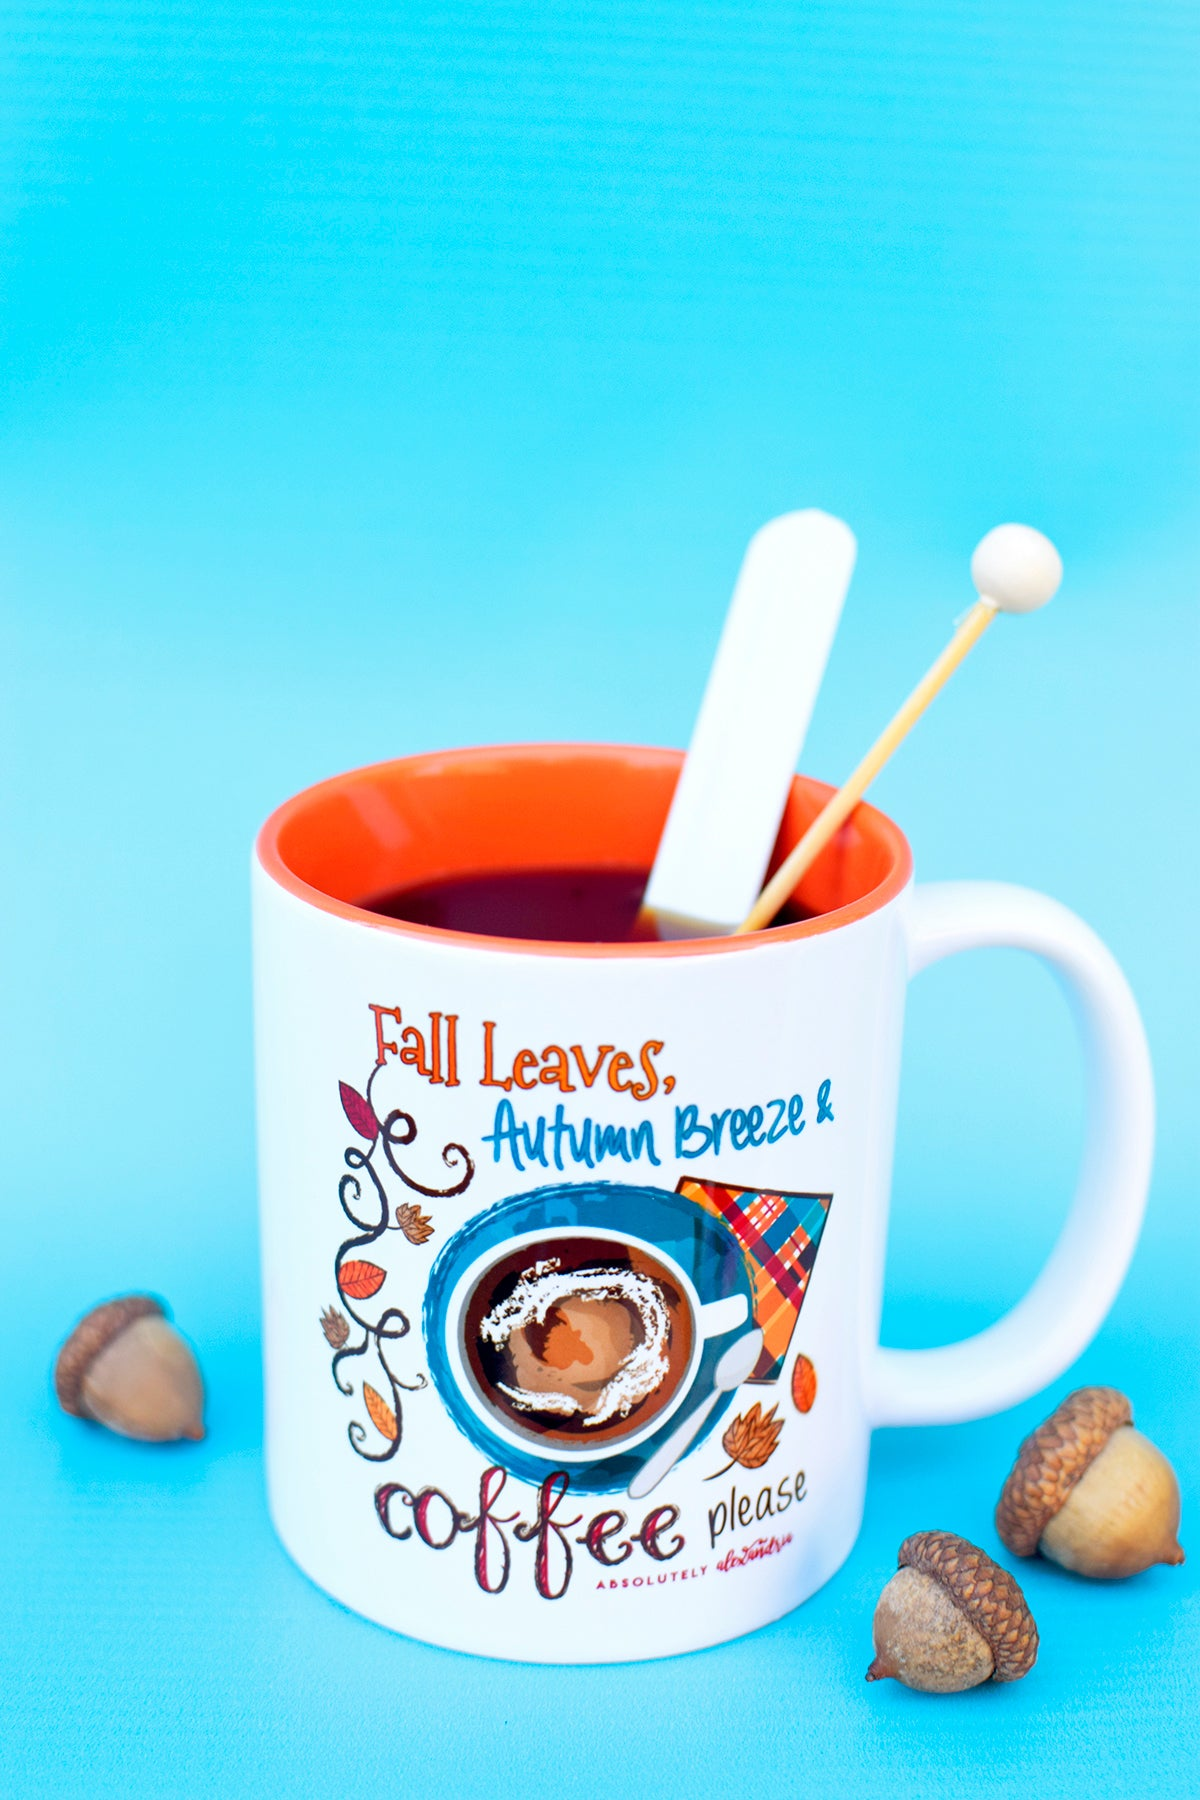 Fall Leaves, Autumn Breeze & Coffee Please Mug